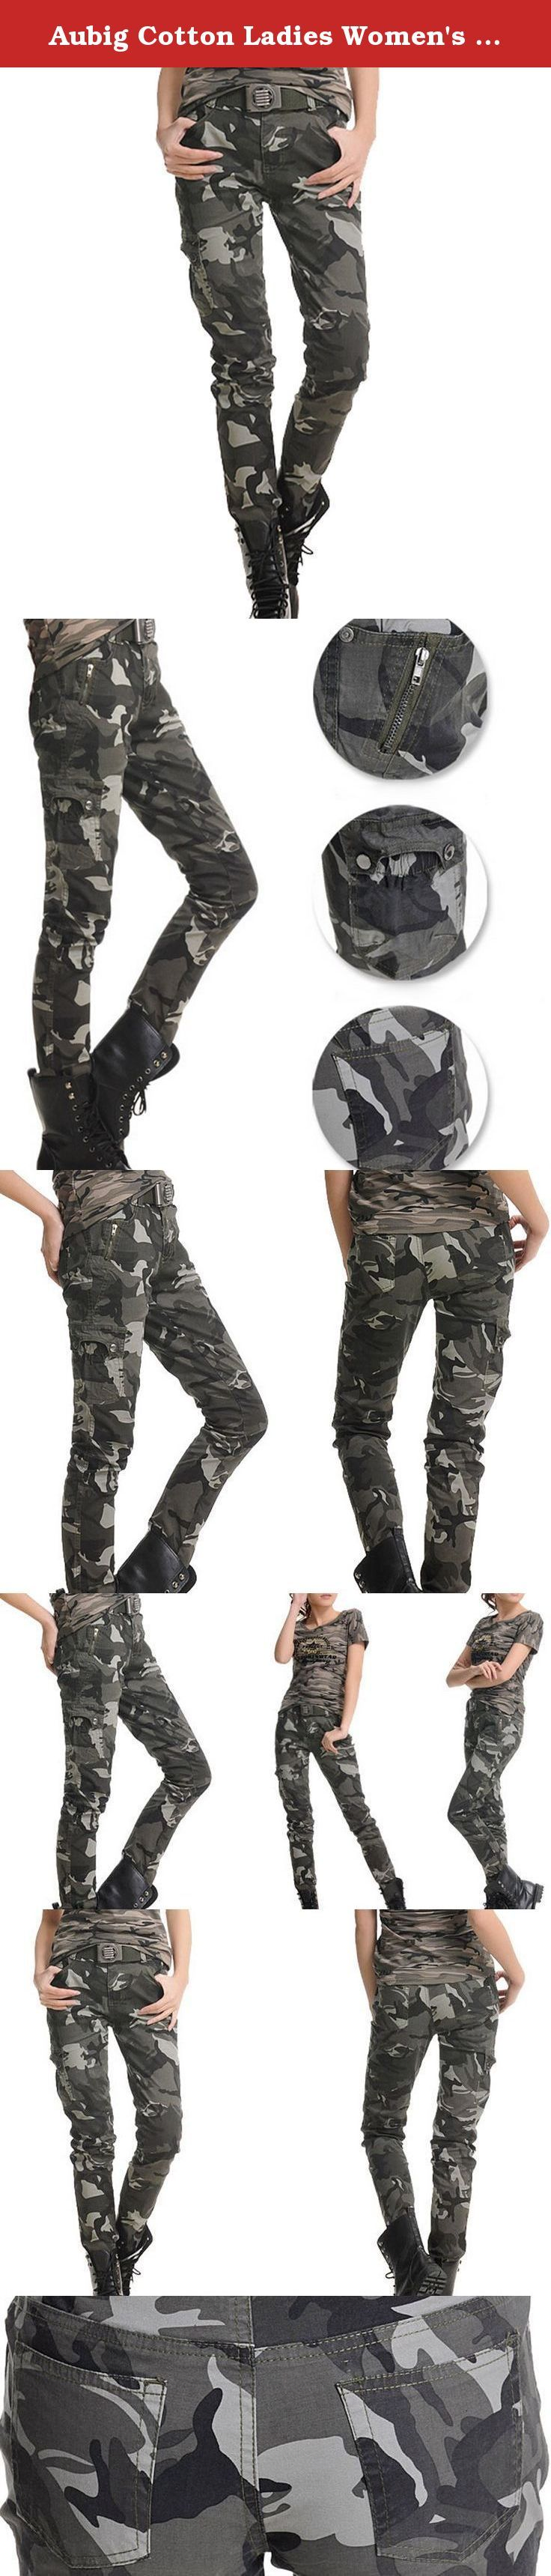 Aubig Cotton Ladies Women's Casual Outdoor Military Army Woodland Camouflage Slim Fit Stretch Jeans Pants Camo Trousers Overall Asian Size S. Features: Durable, comfortable and functional Can be used as sports or leisure wear Specifications: Material: Cotton blended Size: S Waist: 68cm/26.77inch Front Rise: 22cm/8.66inch Back Rise: 31.5cm/12.40inch Thigh: 50cm/19.69inch Hips: 86cm/33.85inch Leg Opening: 28cm/11.02inch Length: 99cm/38.98inch Color: Woodland Camouflage Notice: There might…